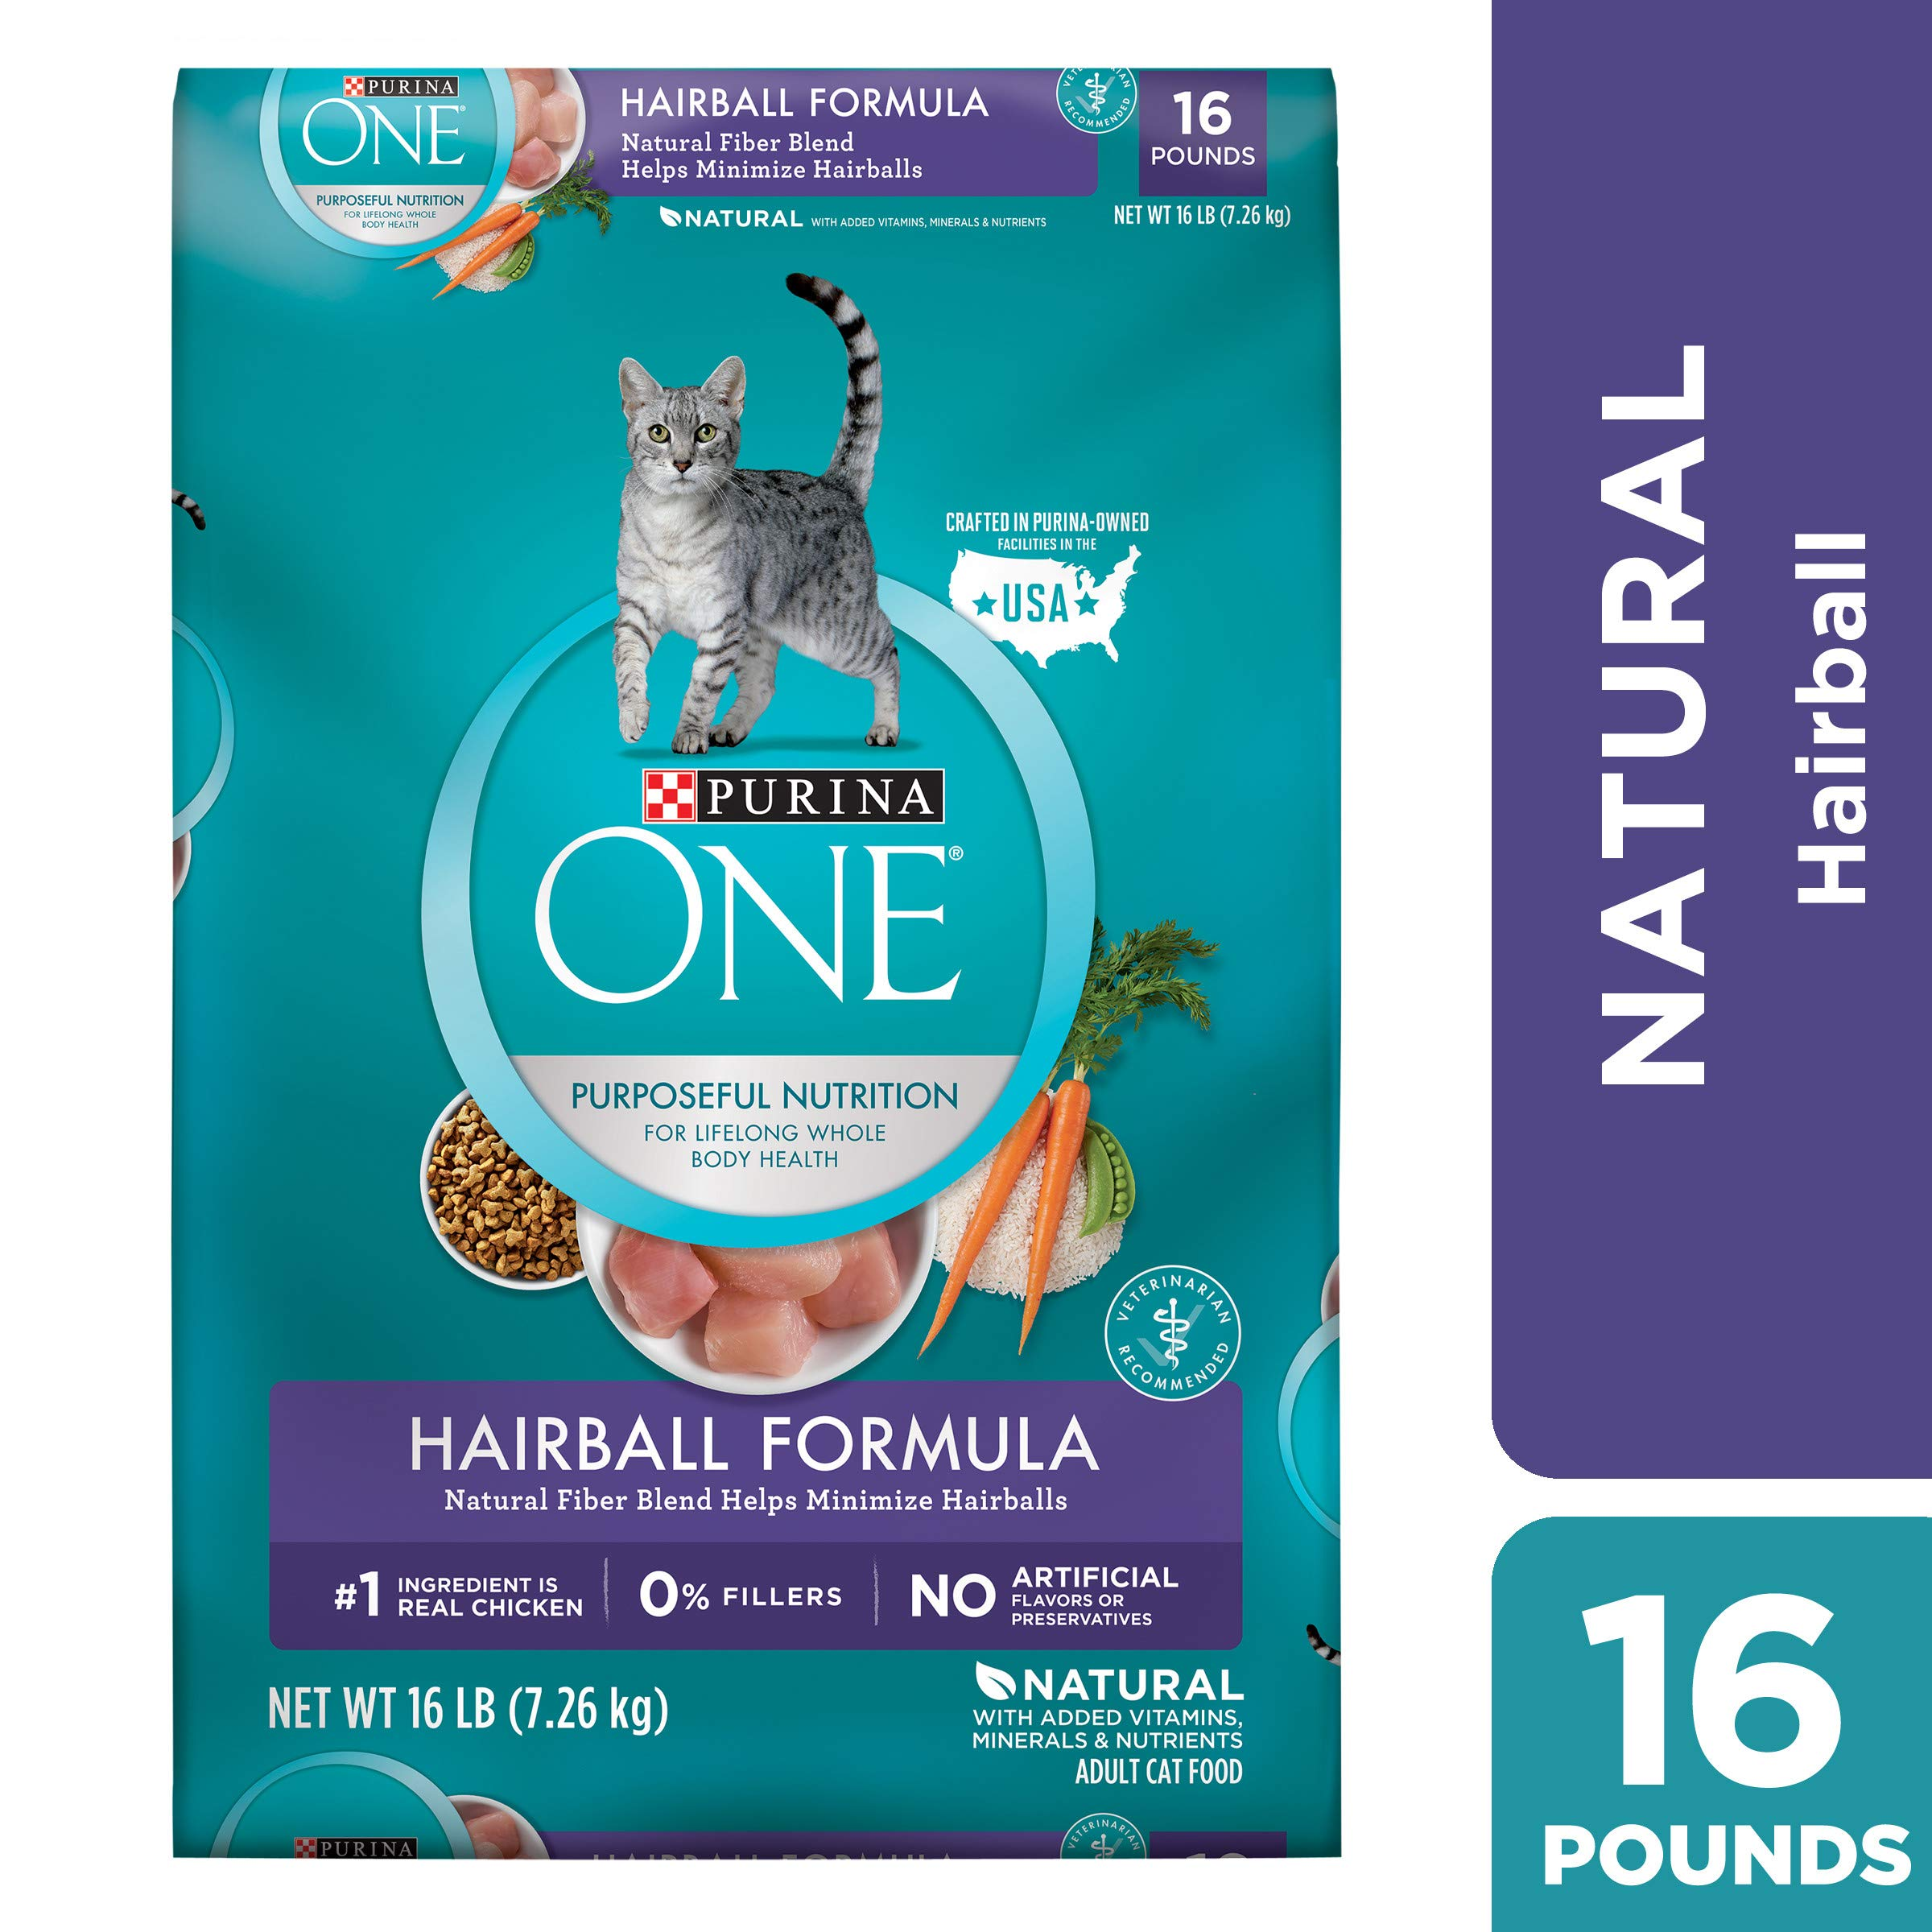 Purina ONE Hairball, Natural Dry Cat Food, Hairball Formula - 16 lb. Bag by Purina ONE